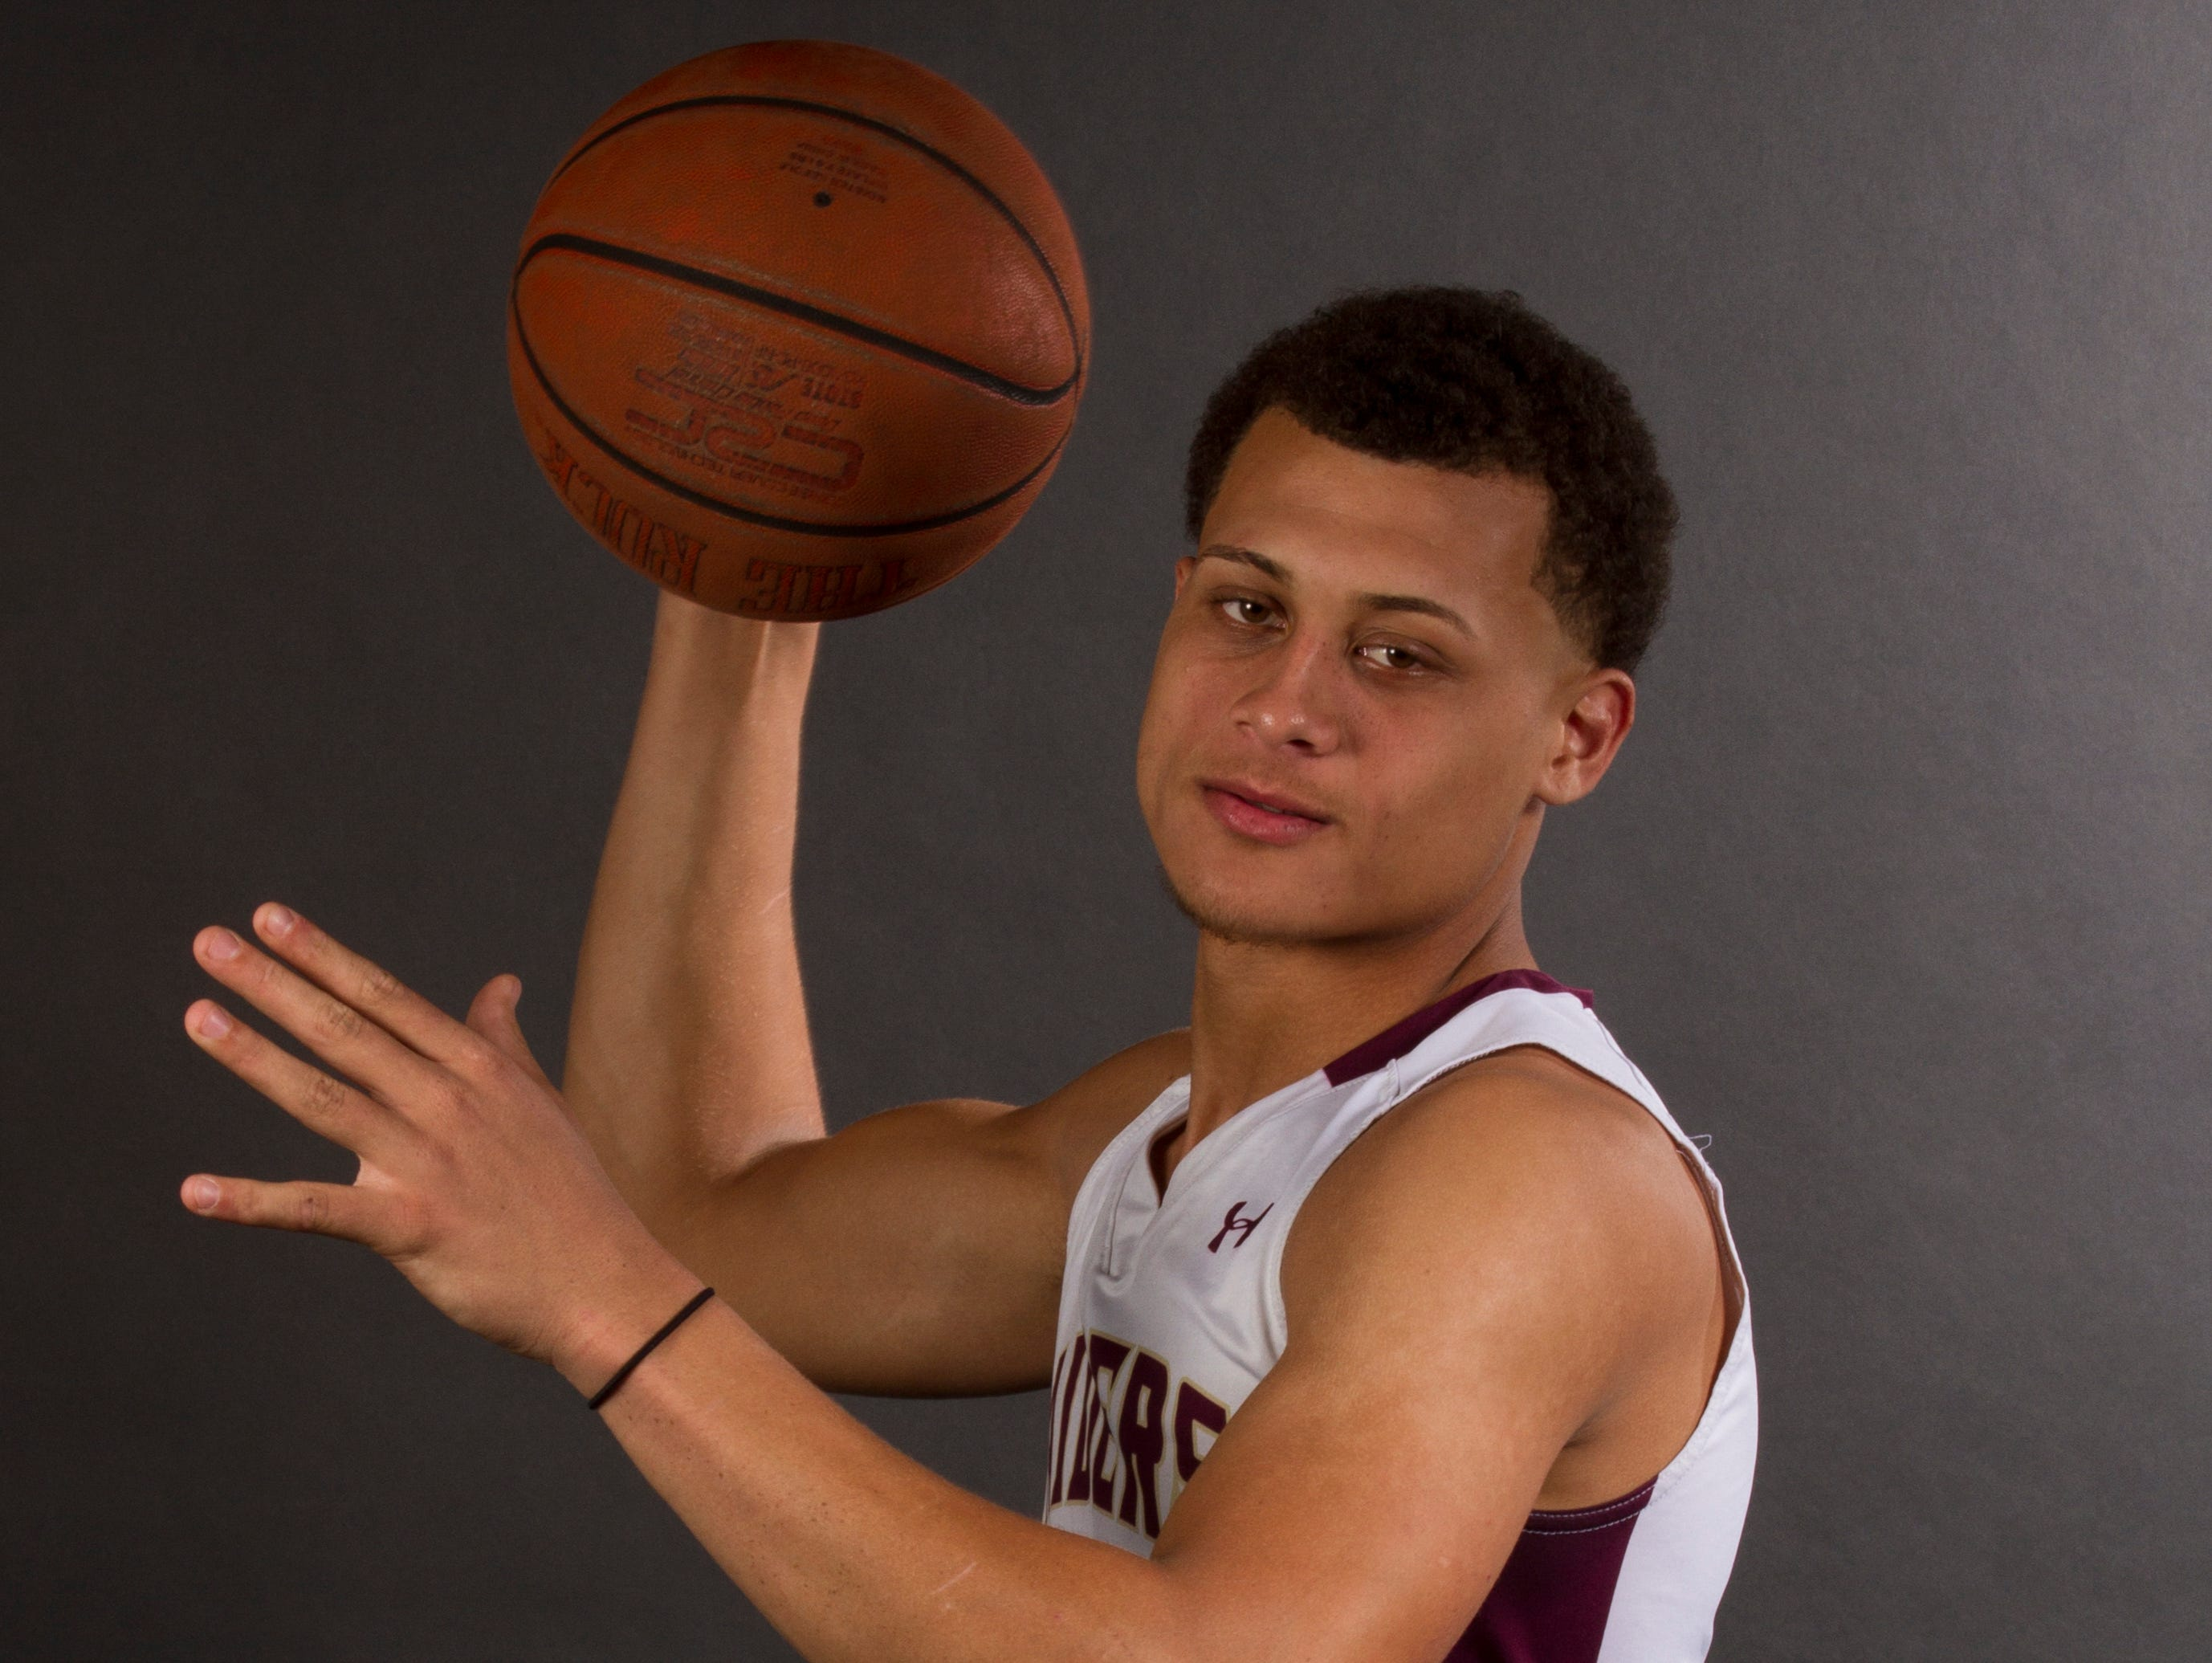 Jacob Tracey, 17, is a sophomore basketball player at Riverdale High School.